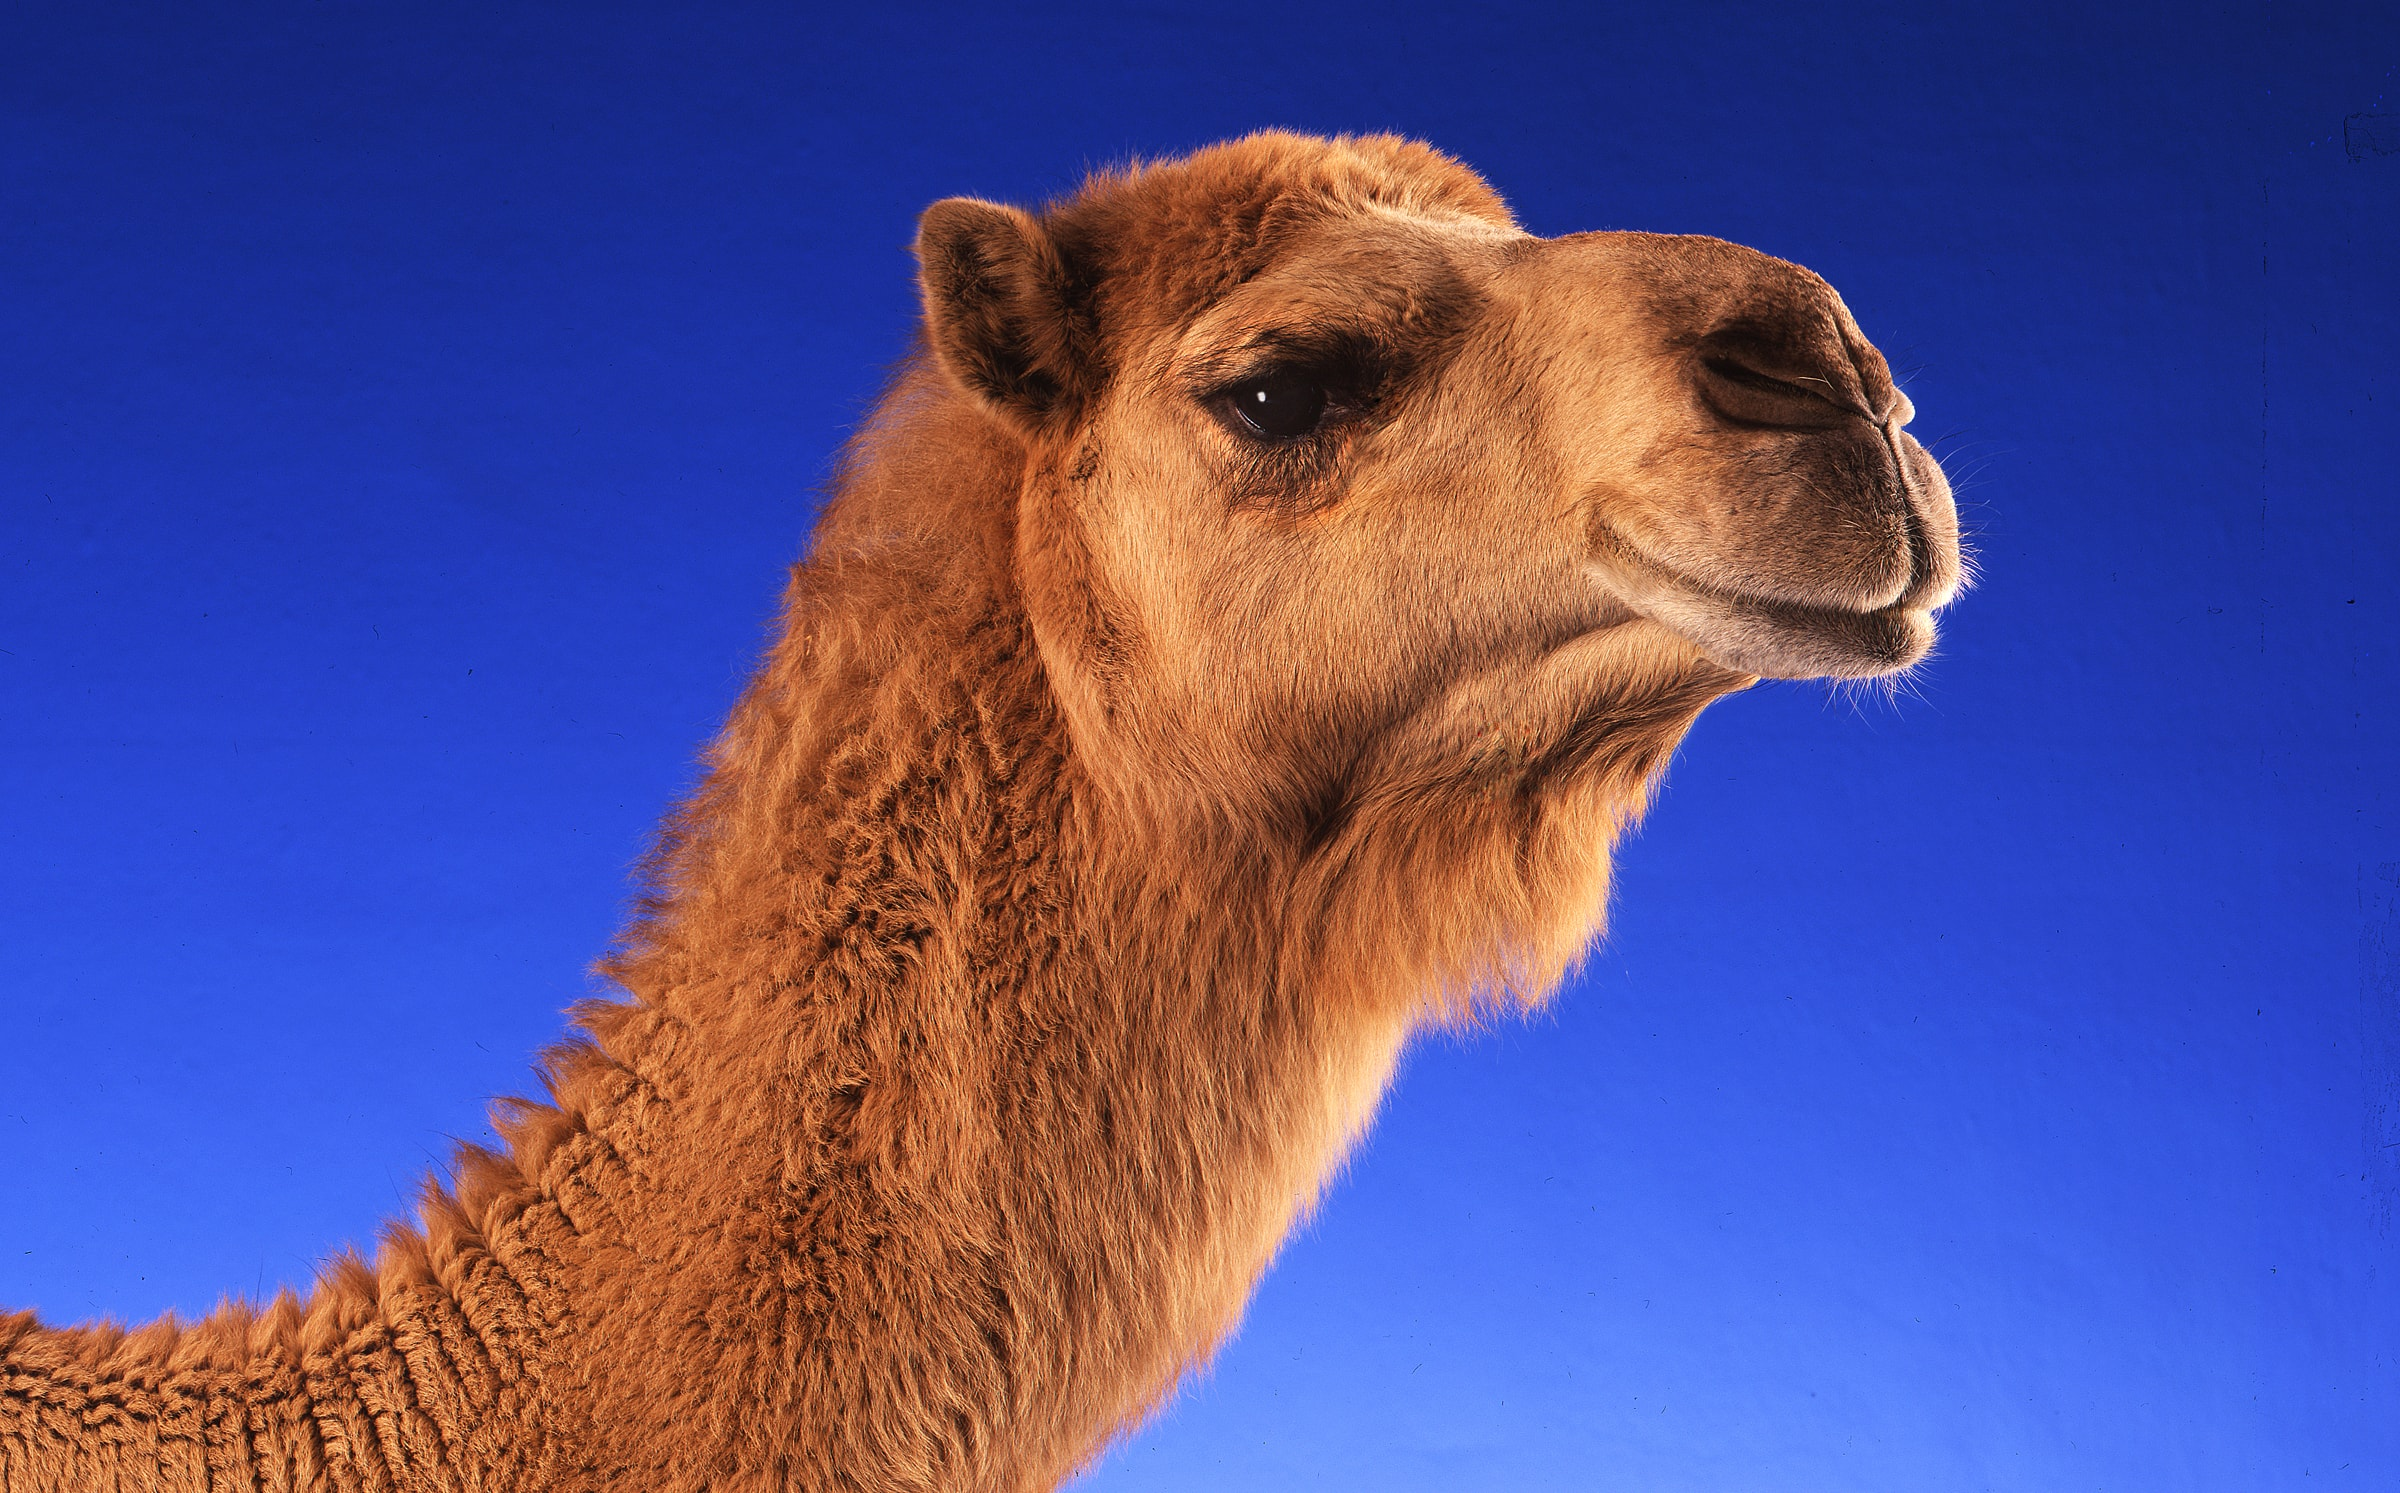 Camel by Paul Bussell